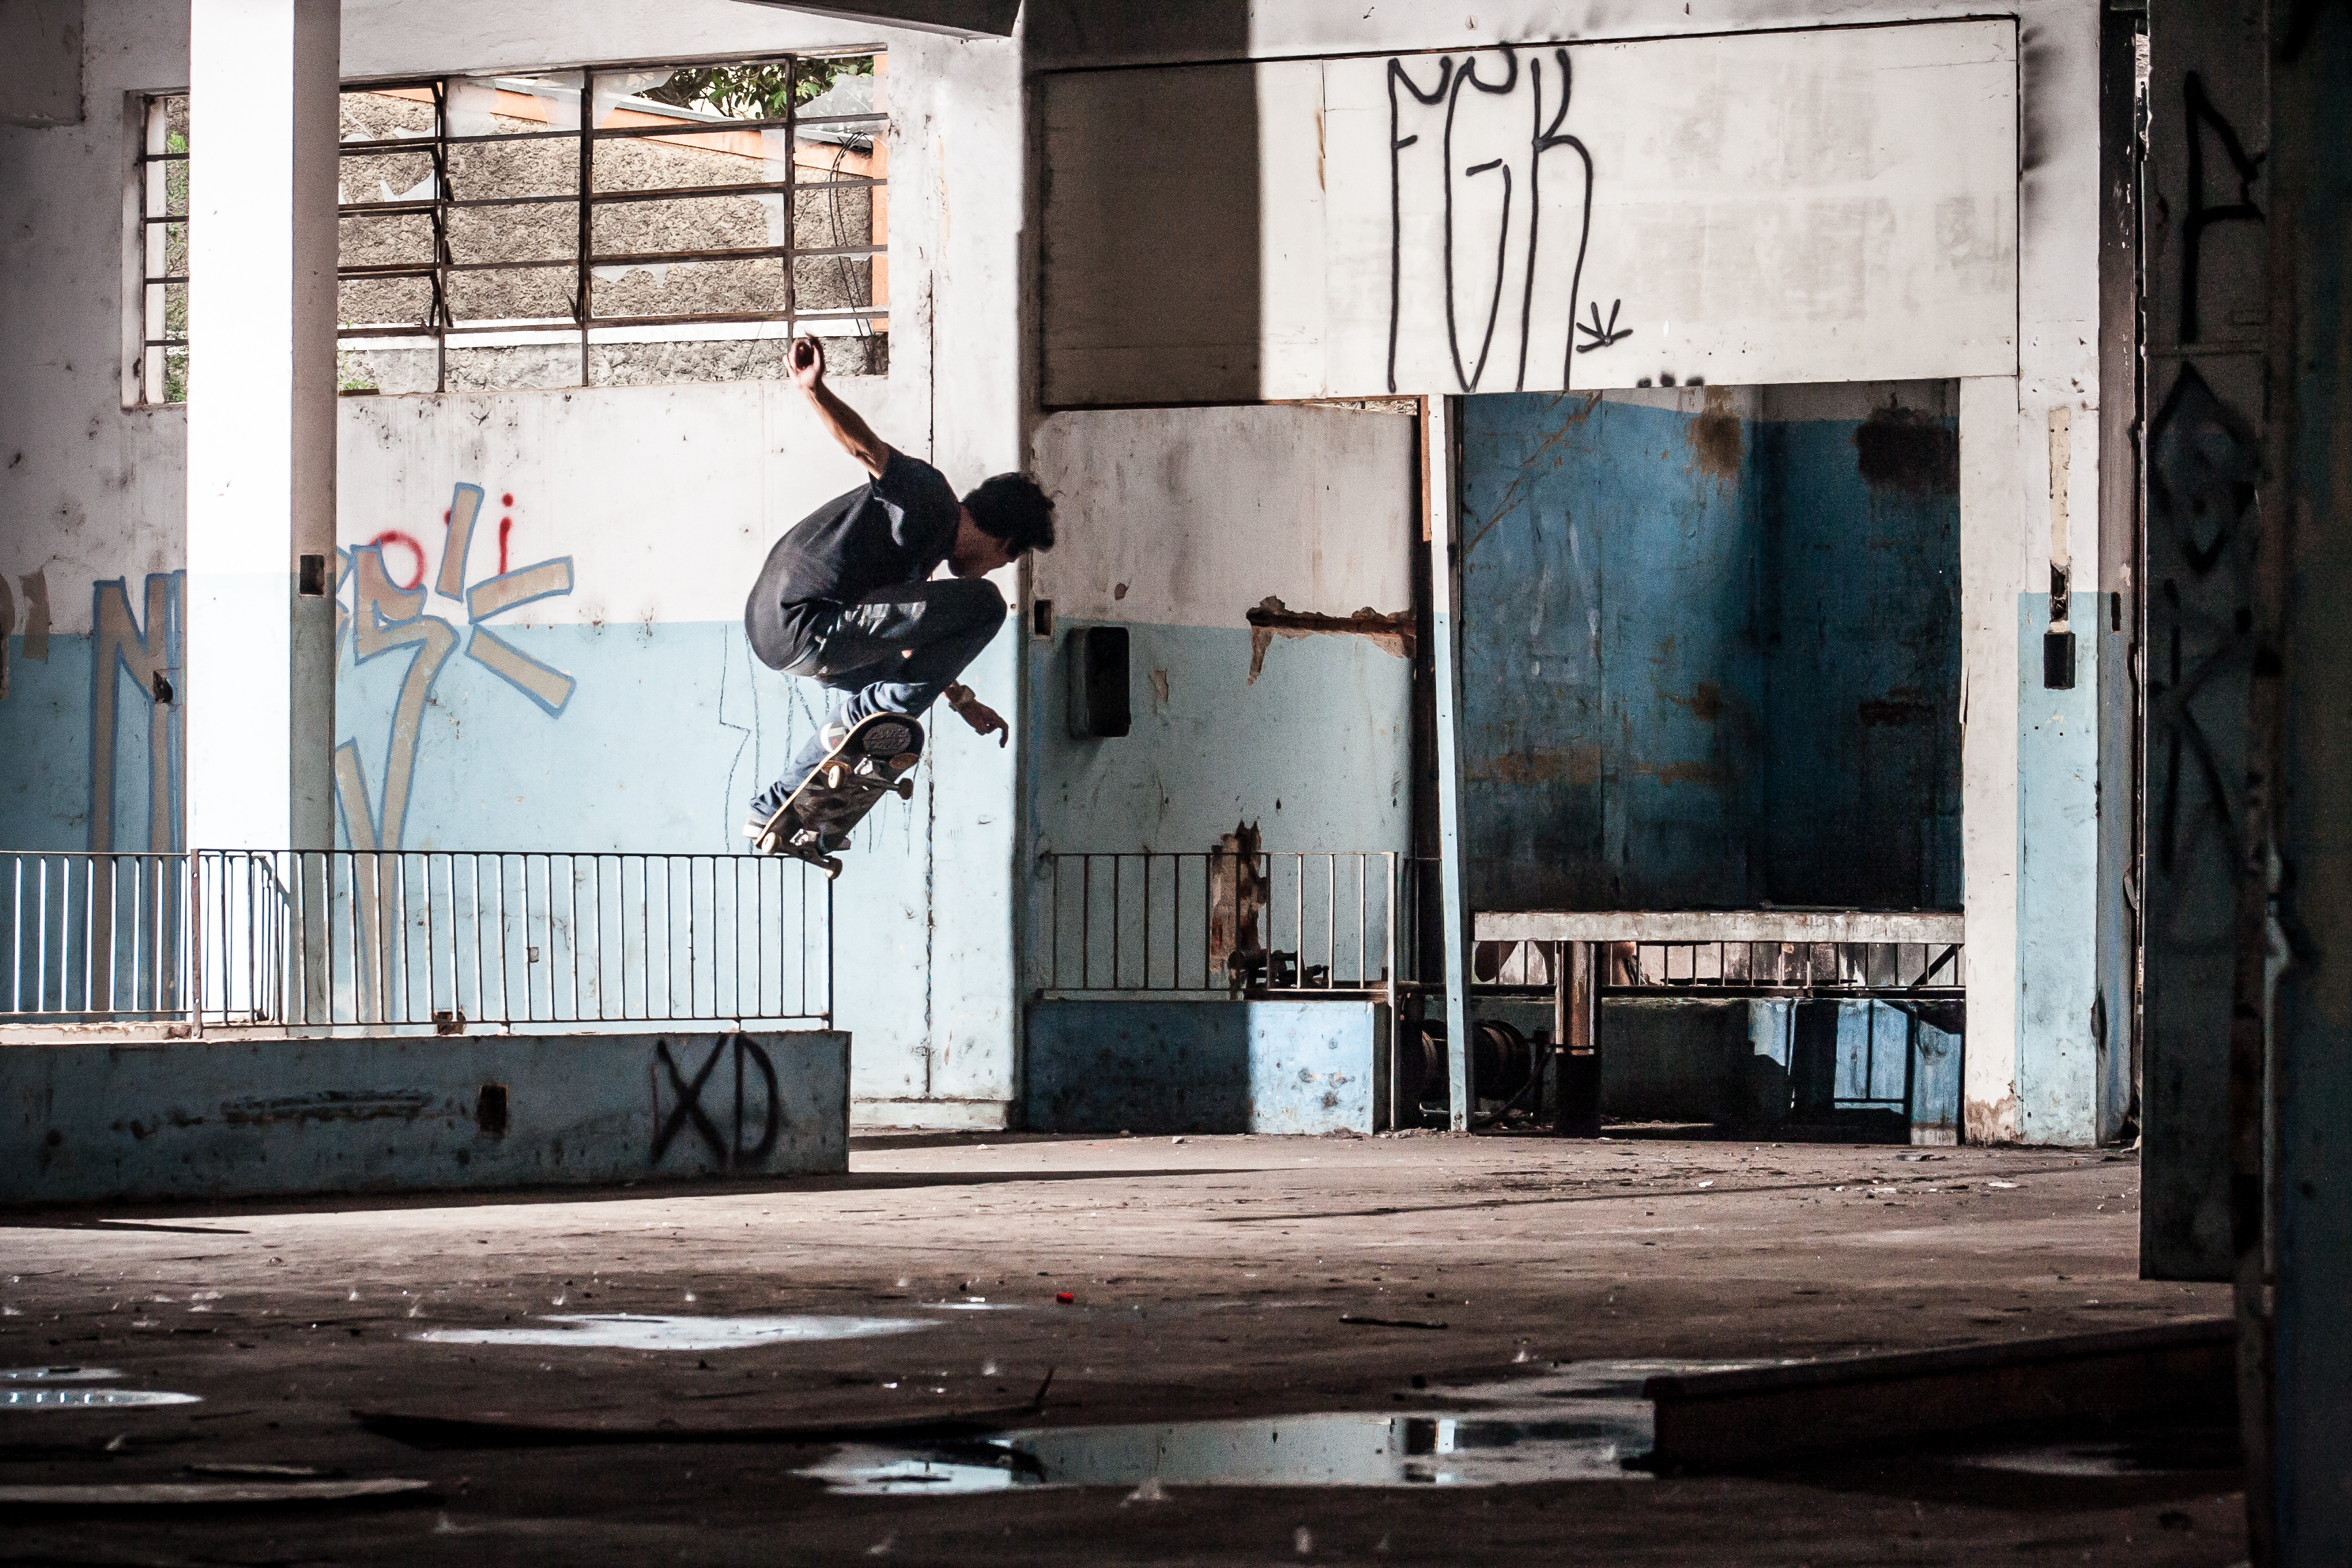 Evandro Martins - SS crooked